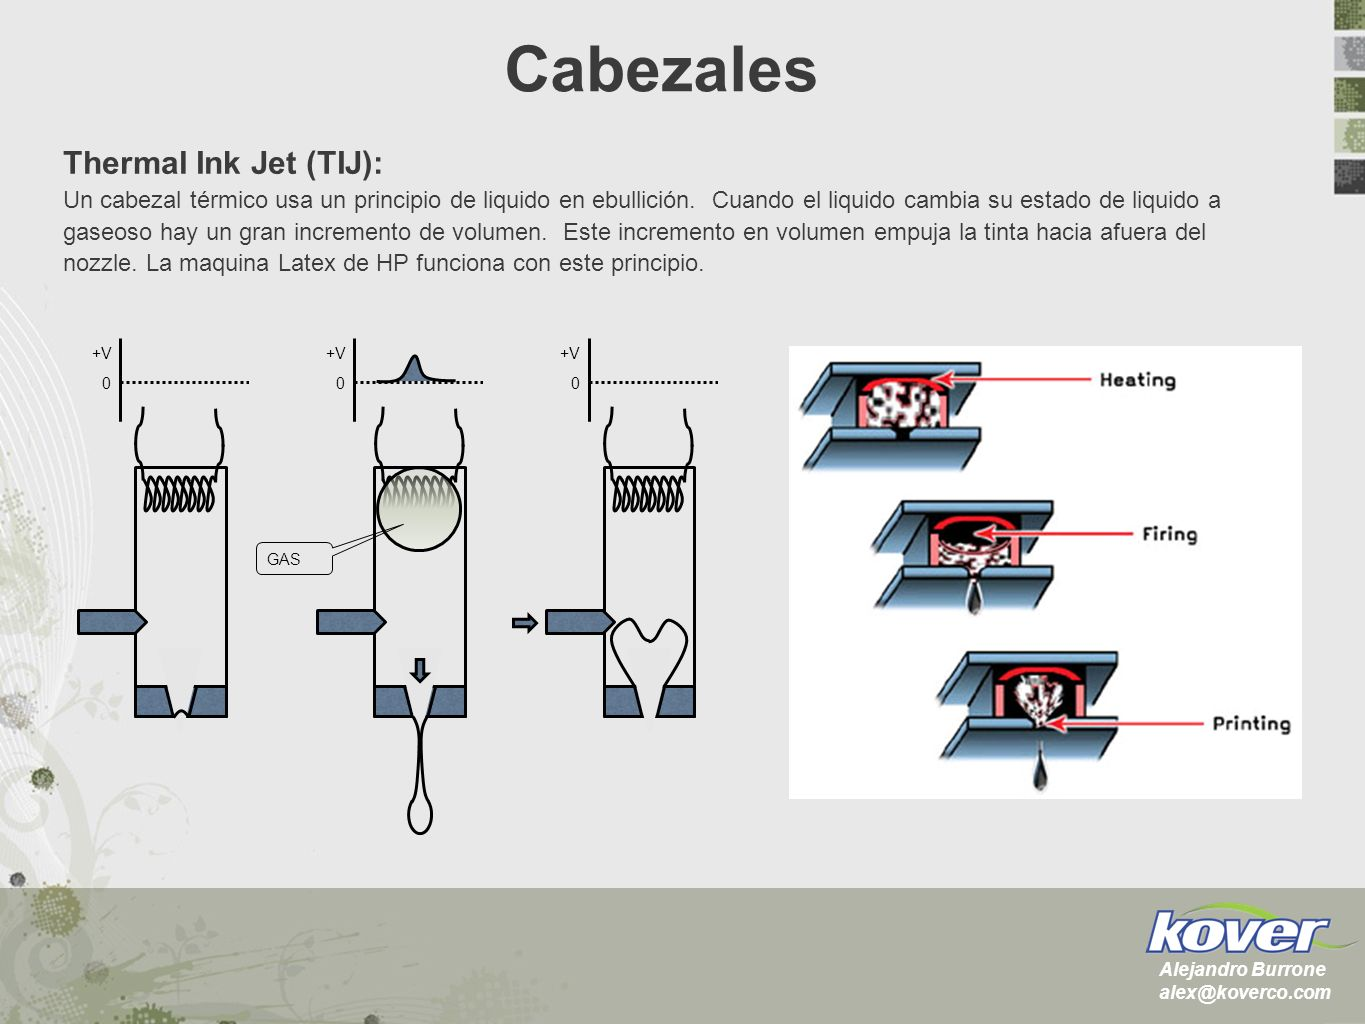 Cabezales Thermal Ink Jet (TIJ):